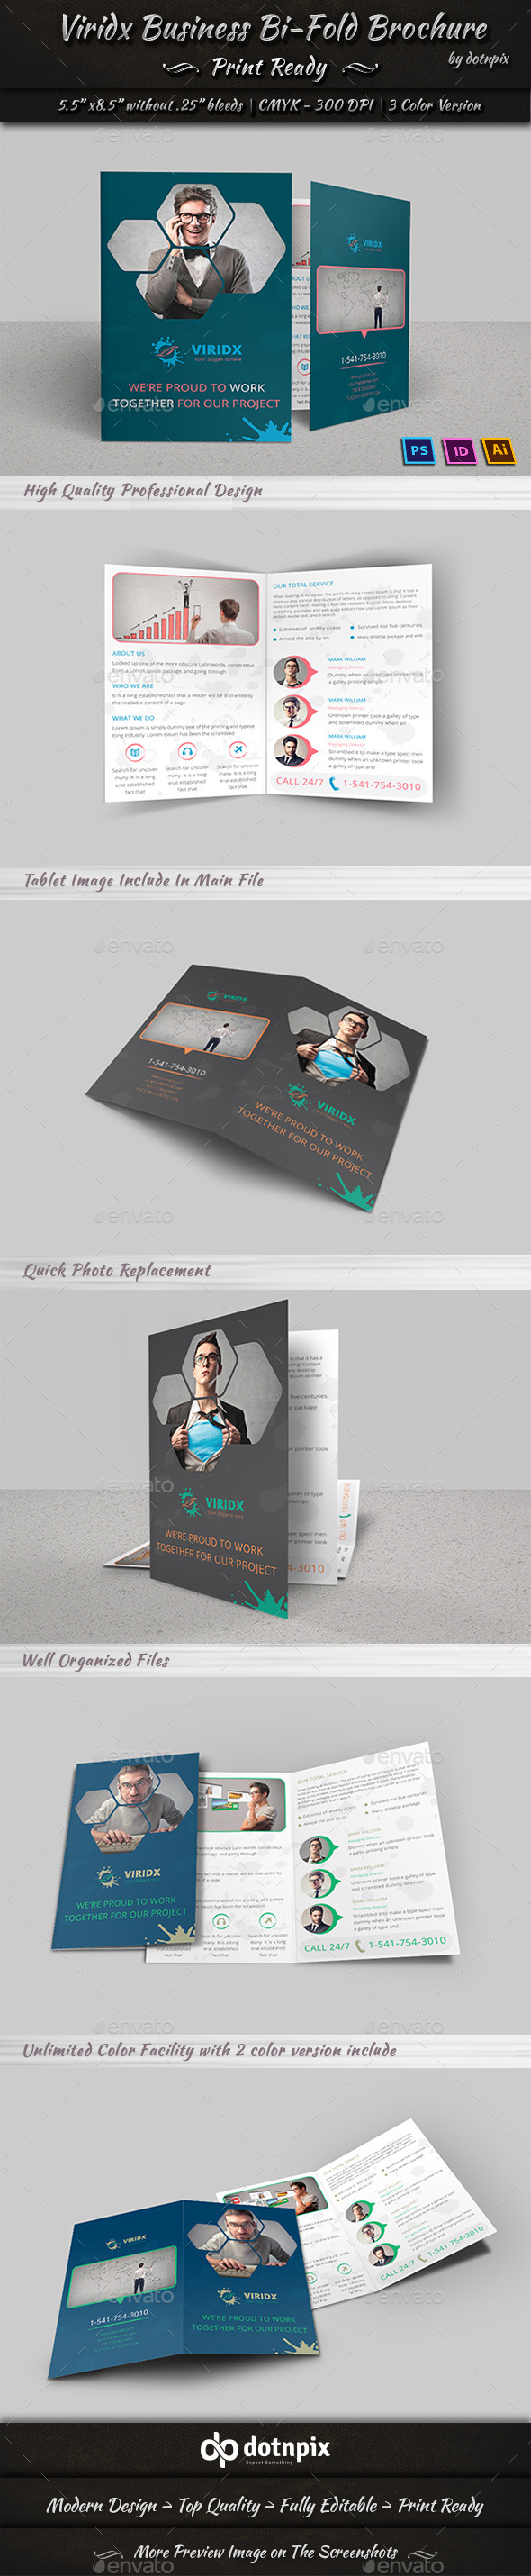 GraphicRiver Viridx Business Bi-Fold Brochure 10347208